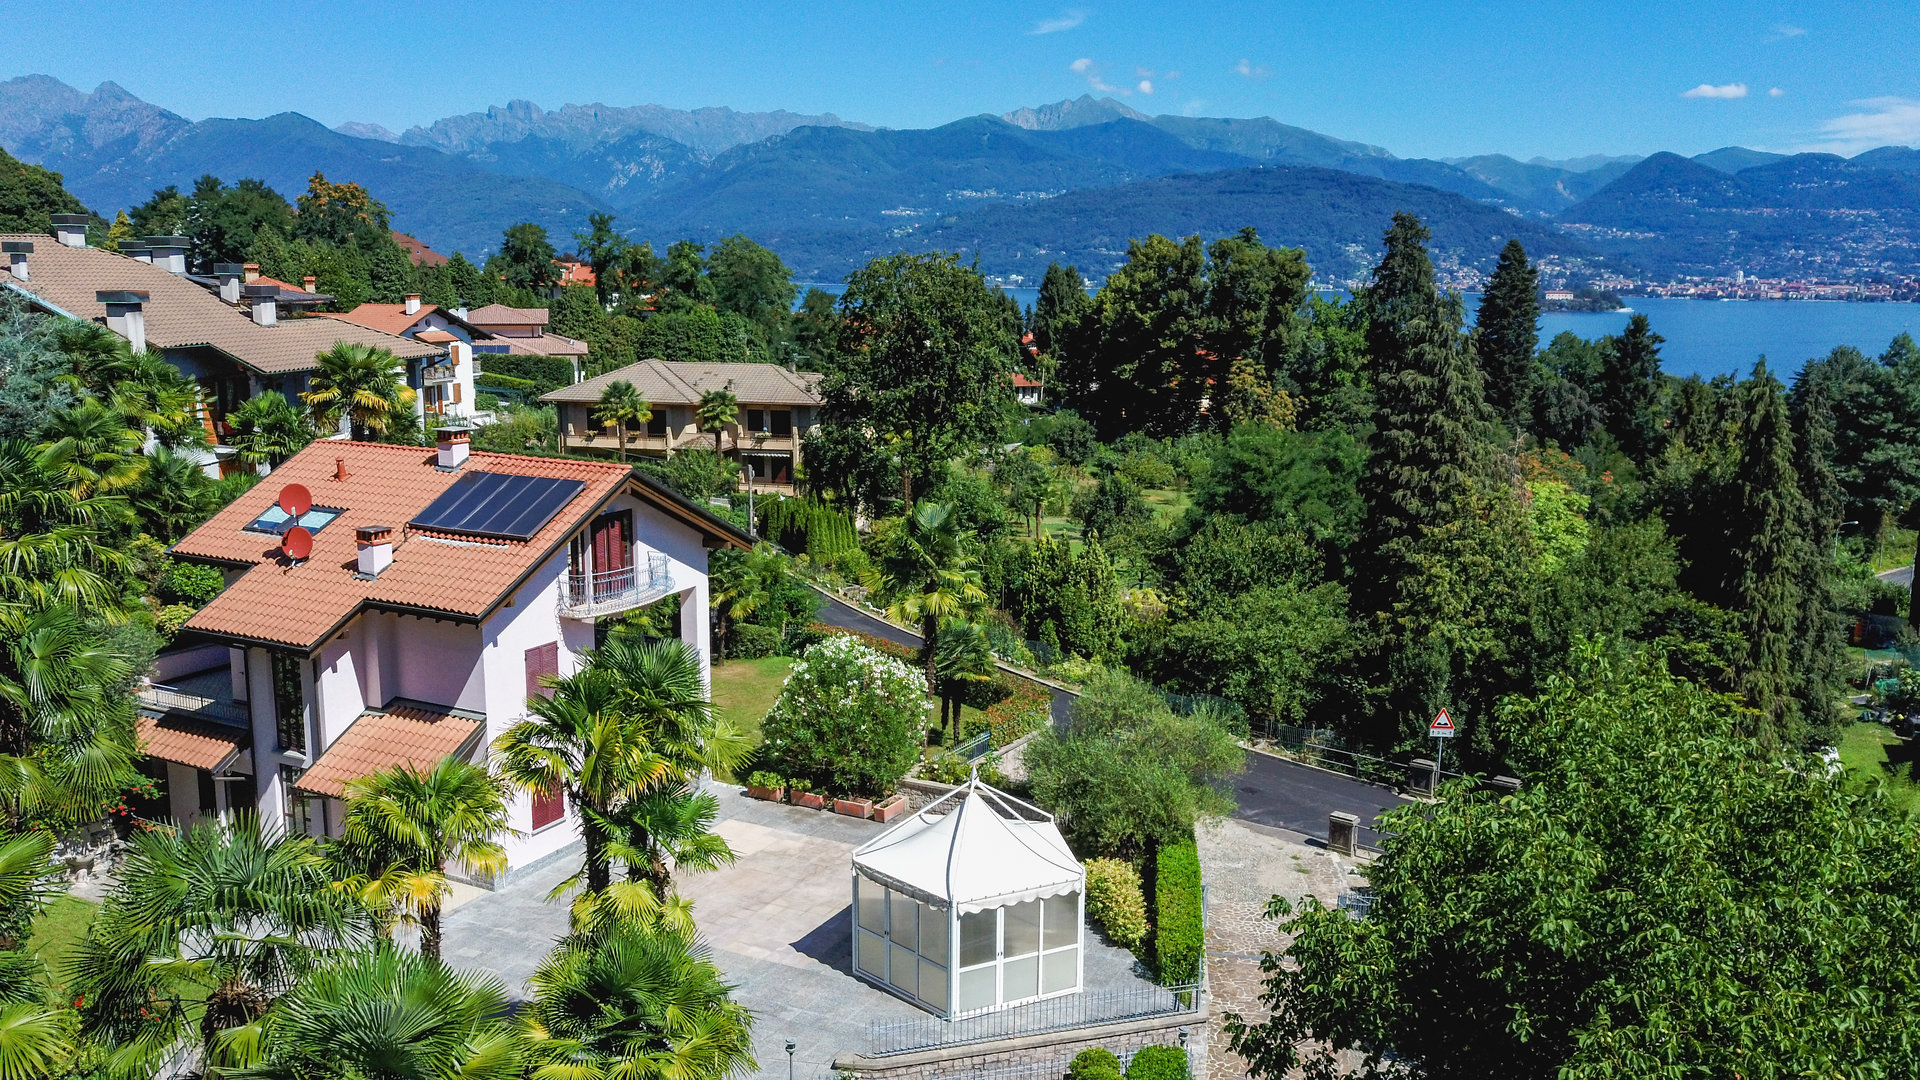 Modern villa near Stresa center - panoramic drone view